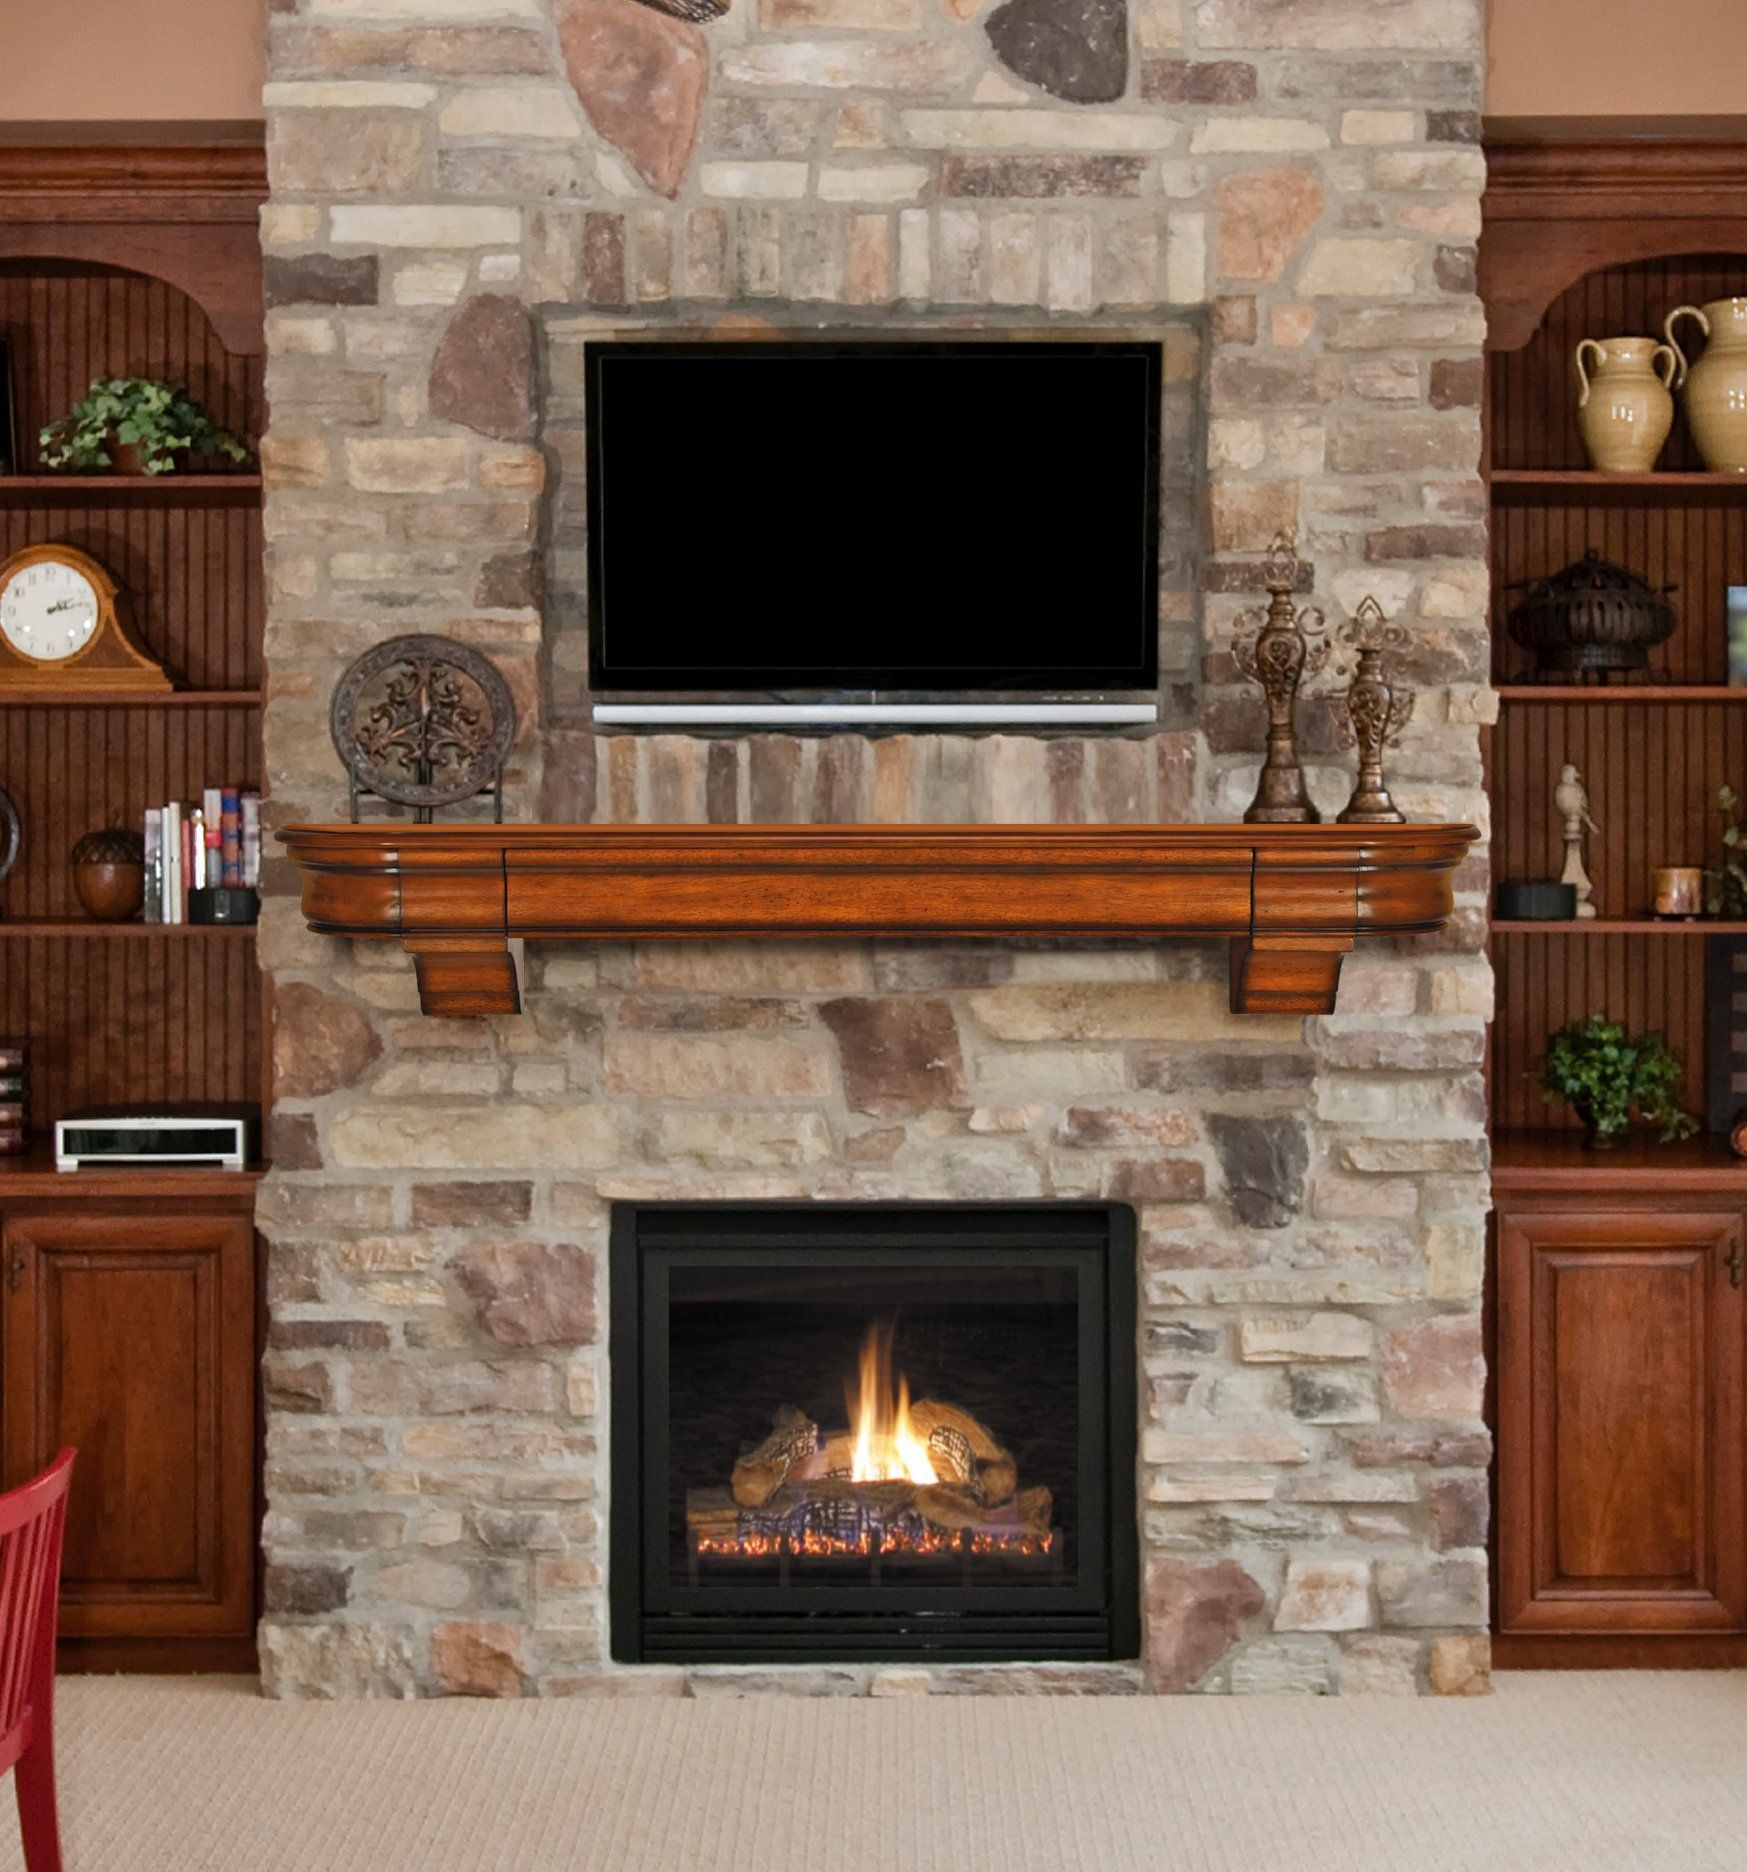 Living Room Designs With Fireplace And Tv - Fireplace Mantels